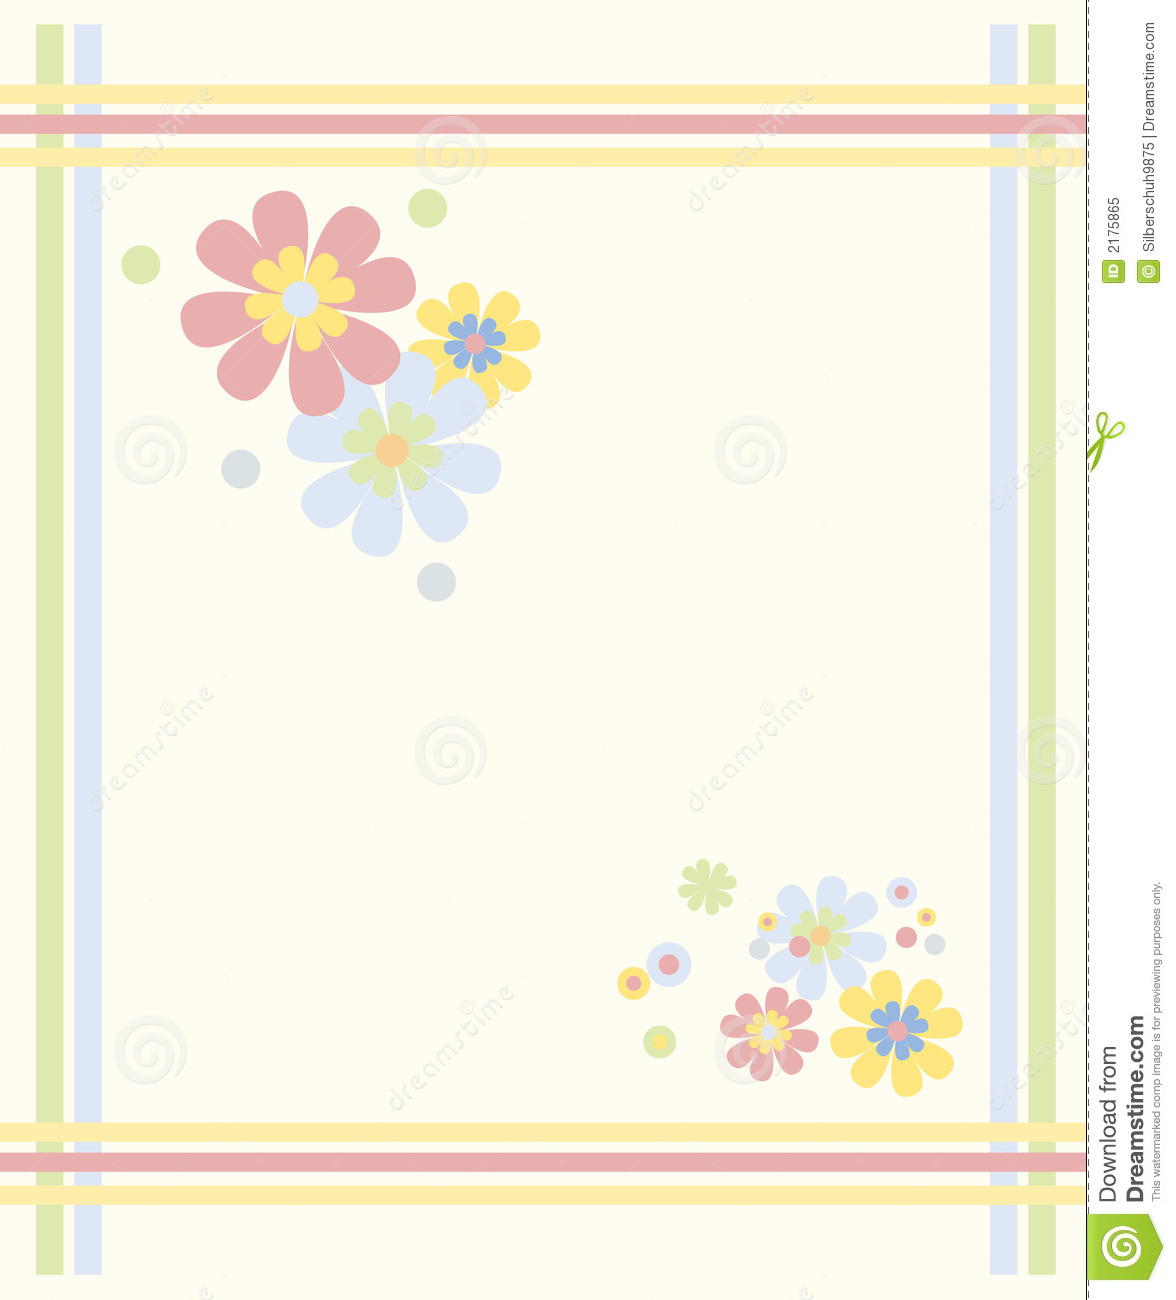 Pastel Colored Flower Frame Royalty Free Stock Photo